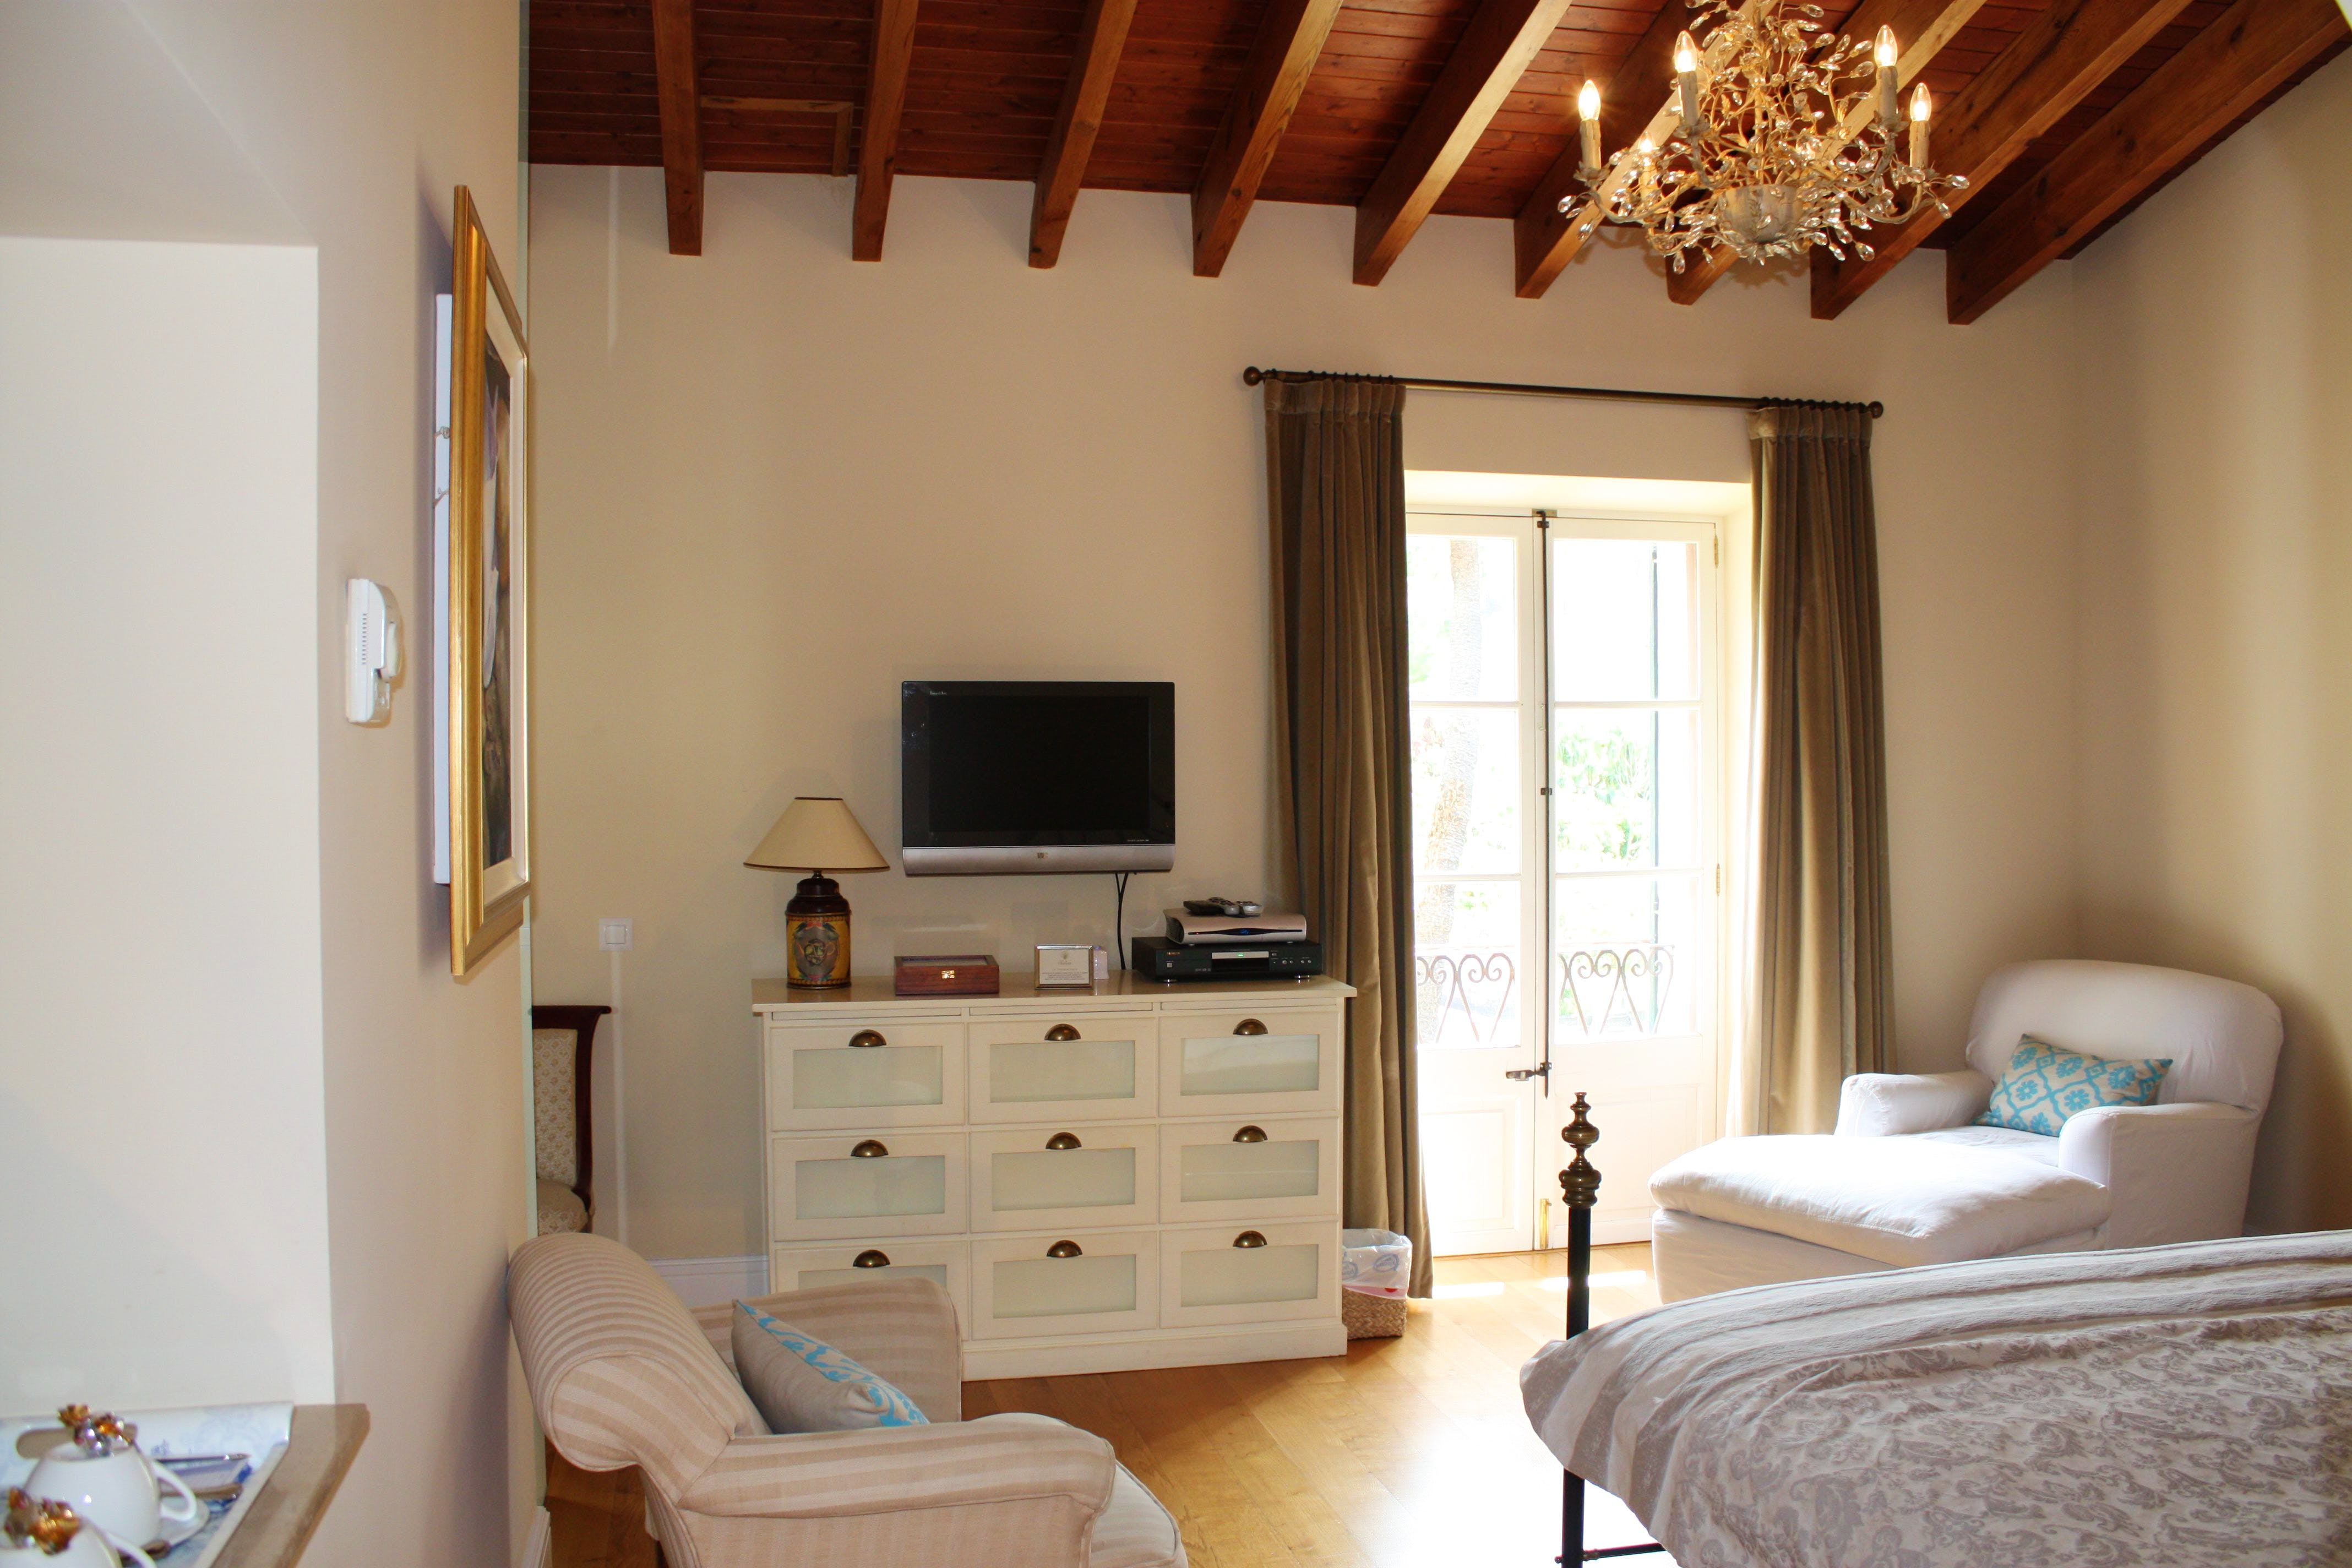 A view of the Deia Junior Suite looking towards the french windows